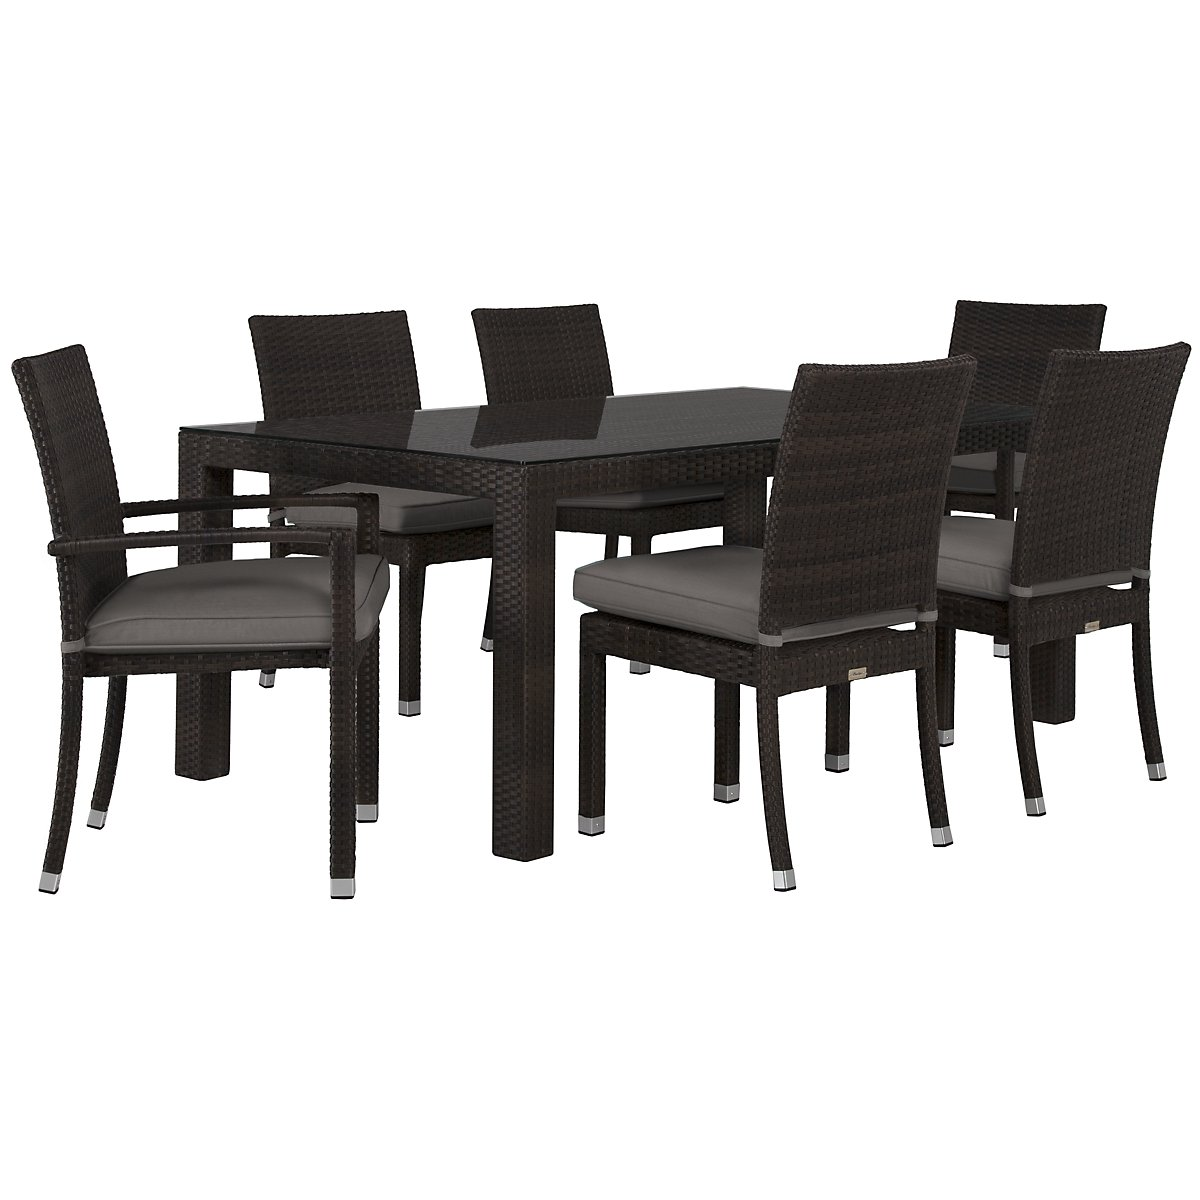 "Zen Gray 72"" Rectangular Table & 4 Chairs"